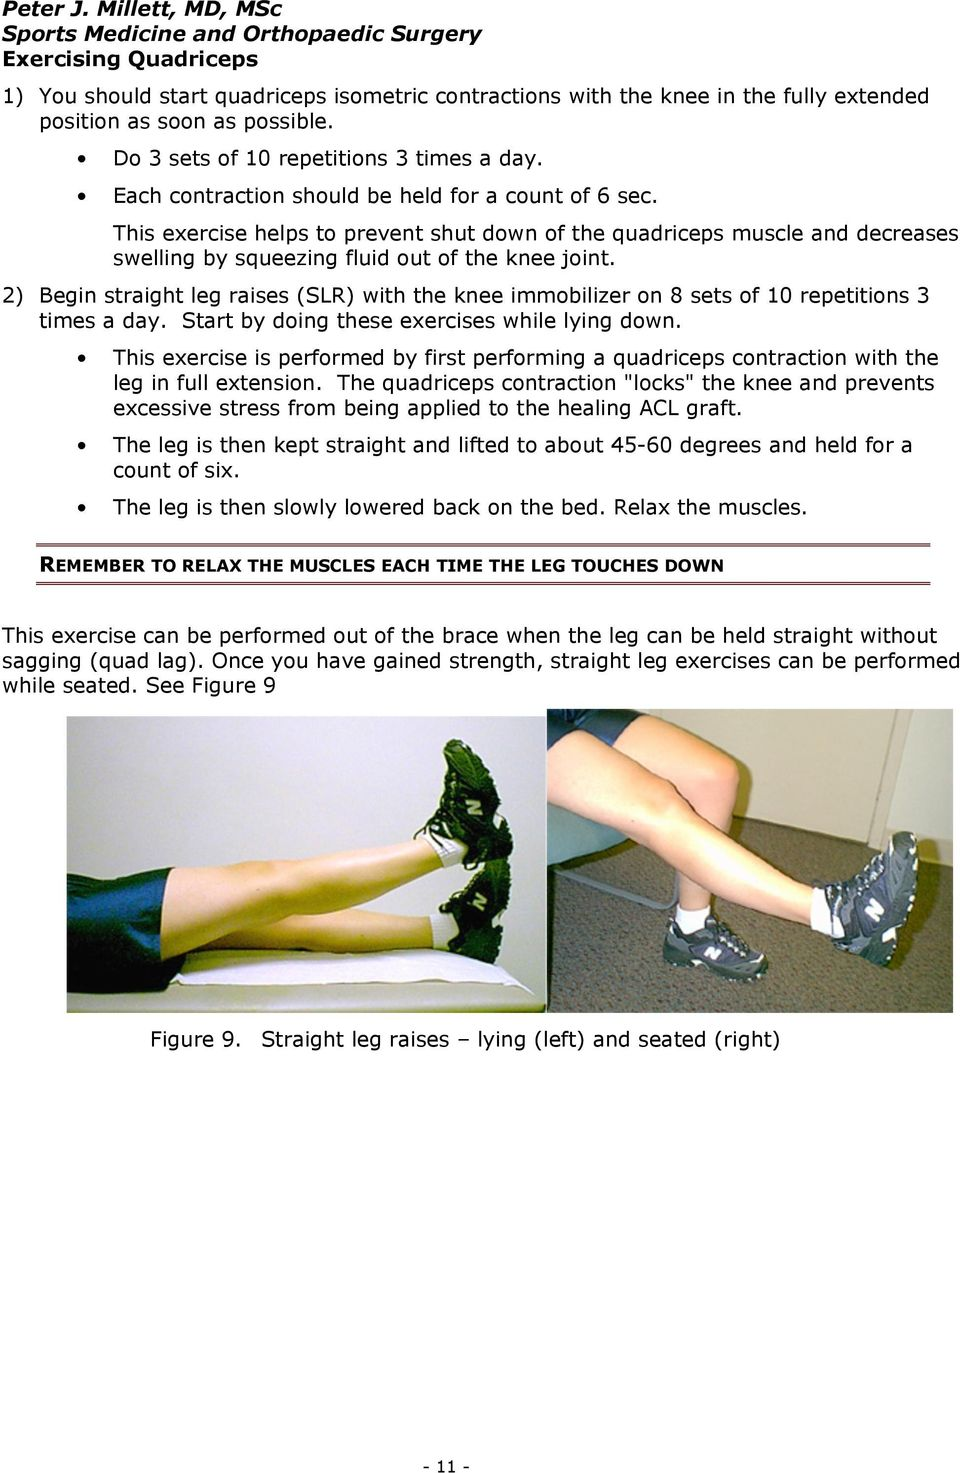 Do 3 sets of 10 repetitions 3 times a day. Each contraction should be held for a count of 6 sec.